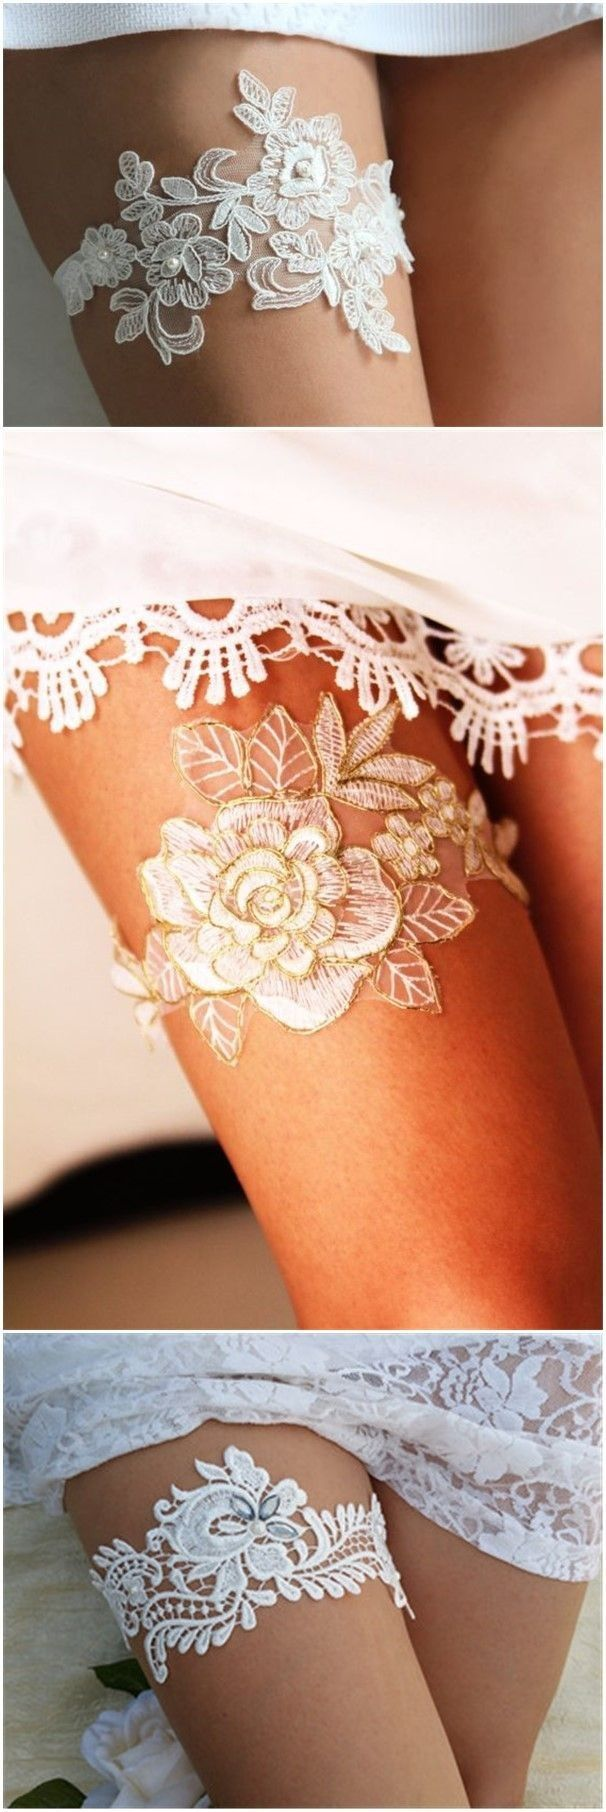 Wedding Ideas » 20 Fabulous Lace Wedding Garter Ideas That You Cannot Say No! » White Lace Wedding Garter Ivory Wedding Lace Garter Garter, Alternative wedding, rustic, wedding, diy decor, wedding garter, reception, diy wedding, etsy, lace, rustic wedding, beach wedding, summer wedding, fall wedding, winter wedding, spring wedding #afflink